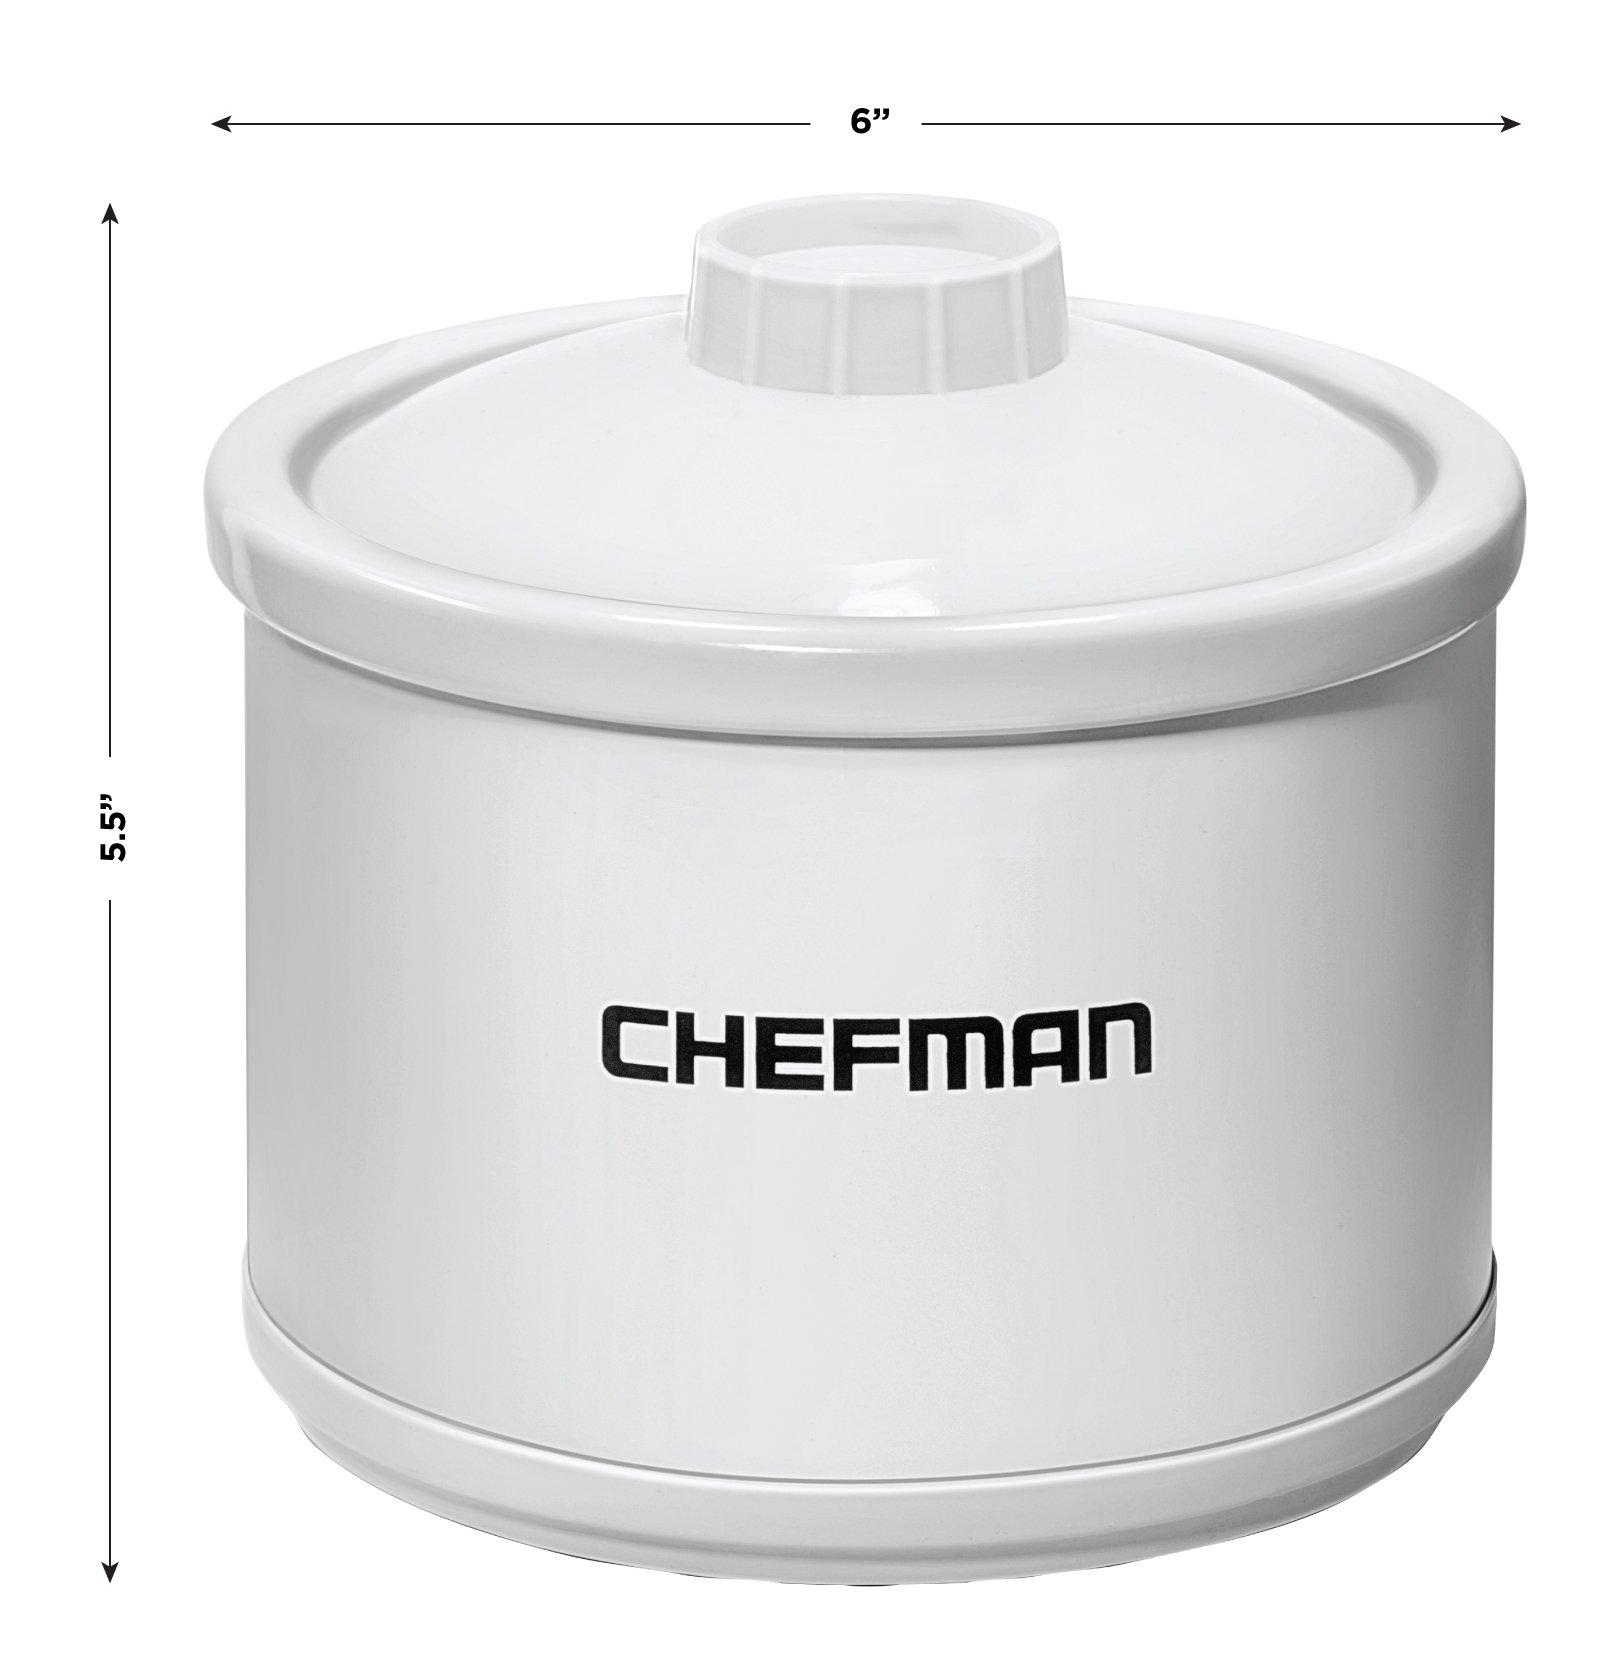 Chefman Mini Dipper Fondue Maker Food Warmer, Extra Small, 21 oz, White by Chefman (Image #3)